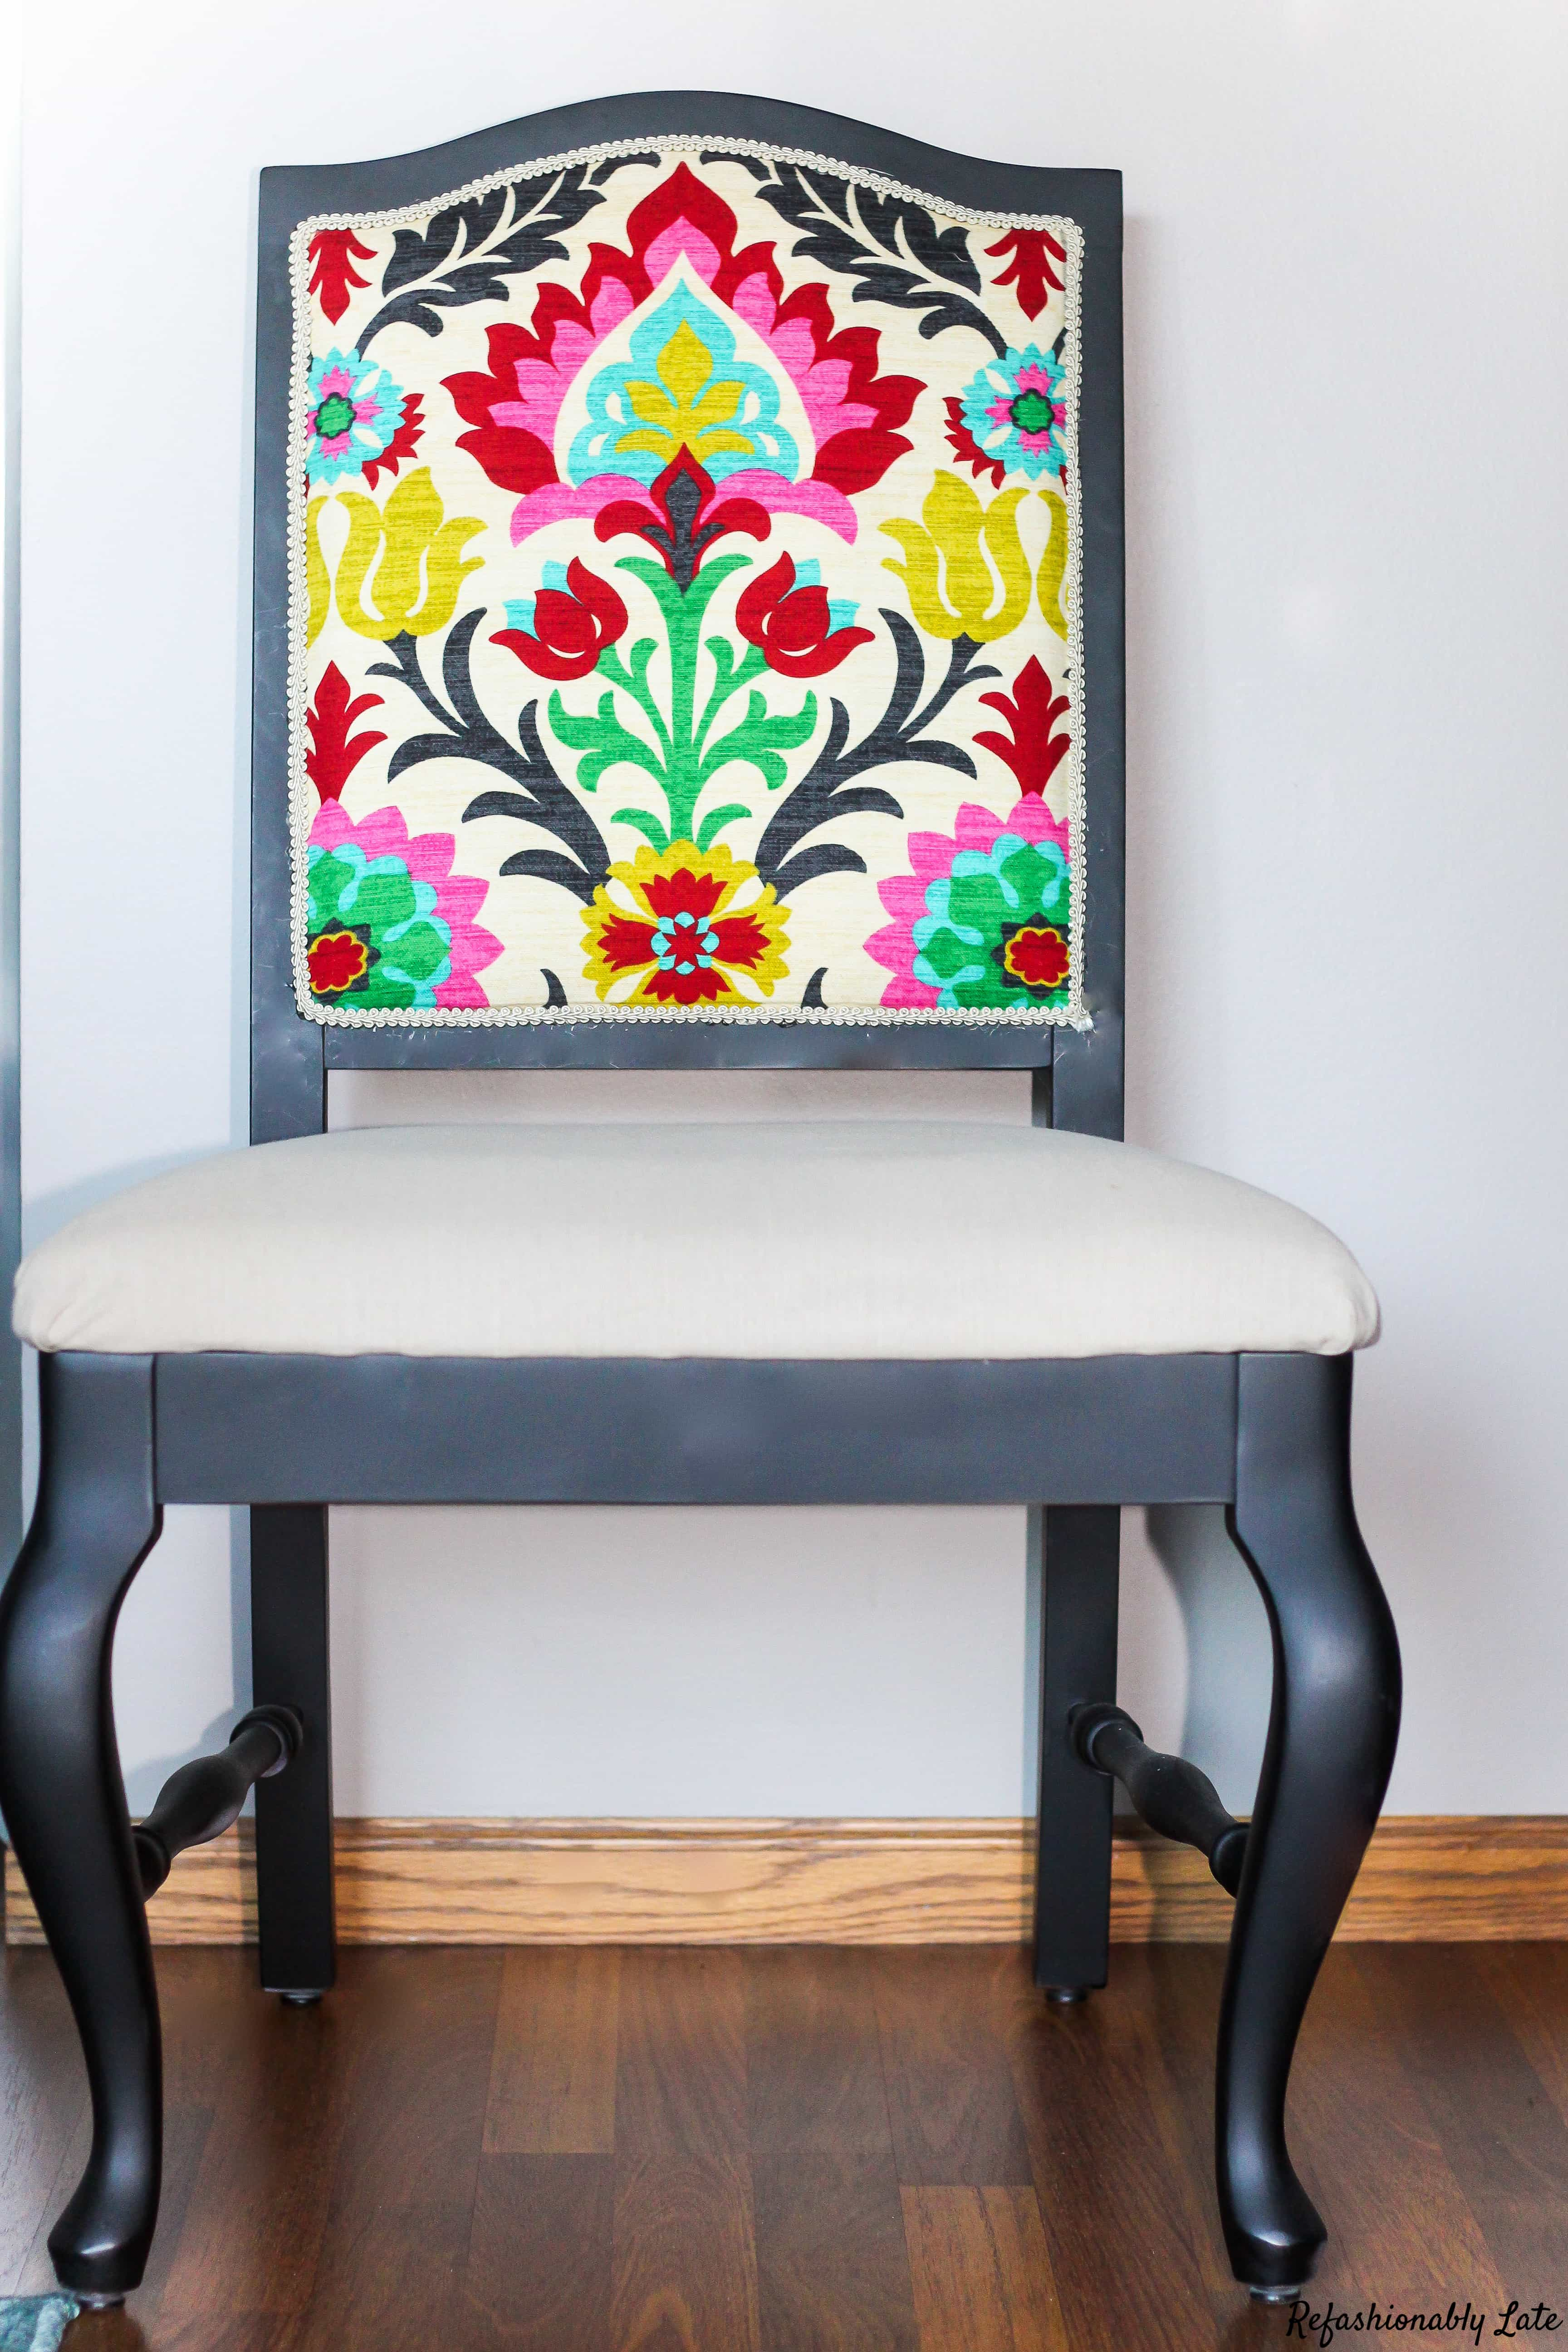 Dining Room Chairs Do Over - www.refashionablylate.com